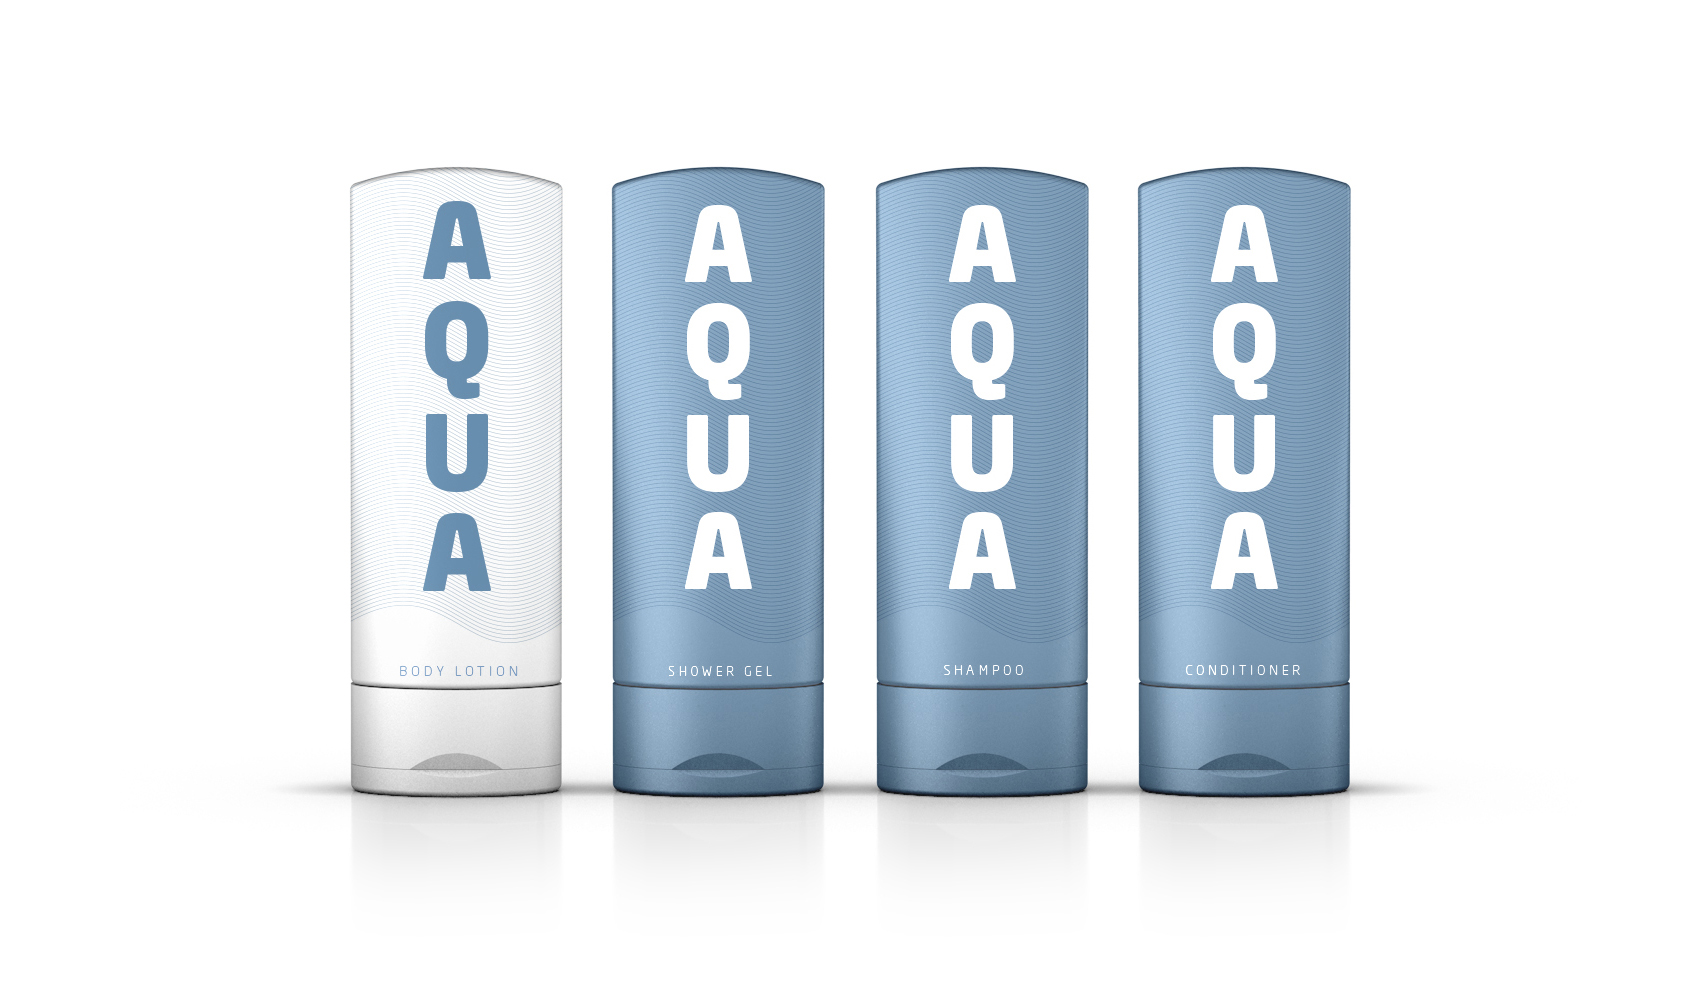 20170329-packaging-aqua